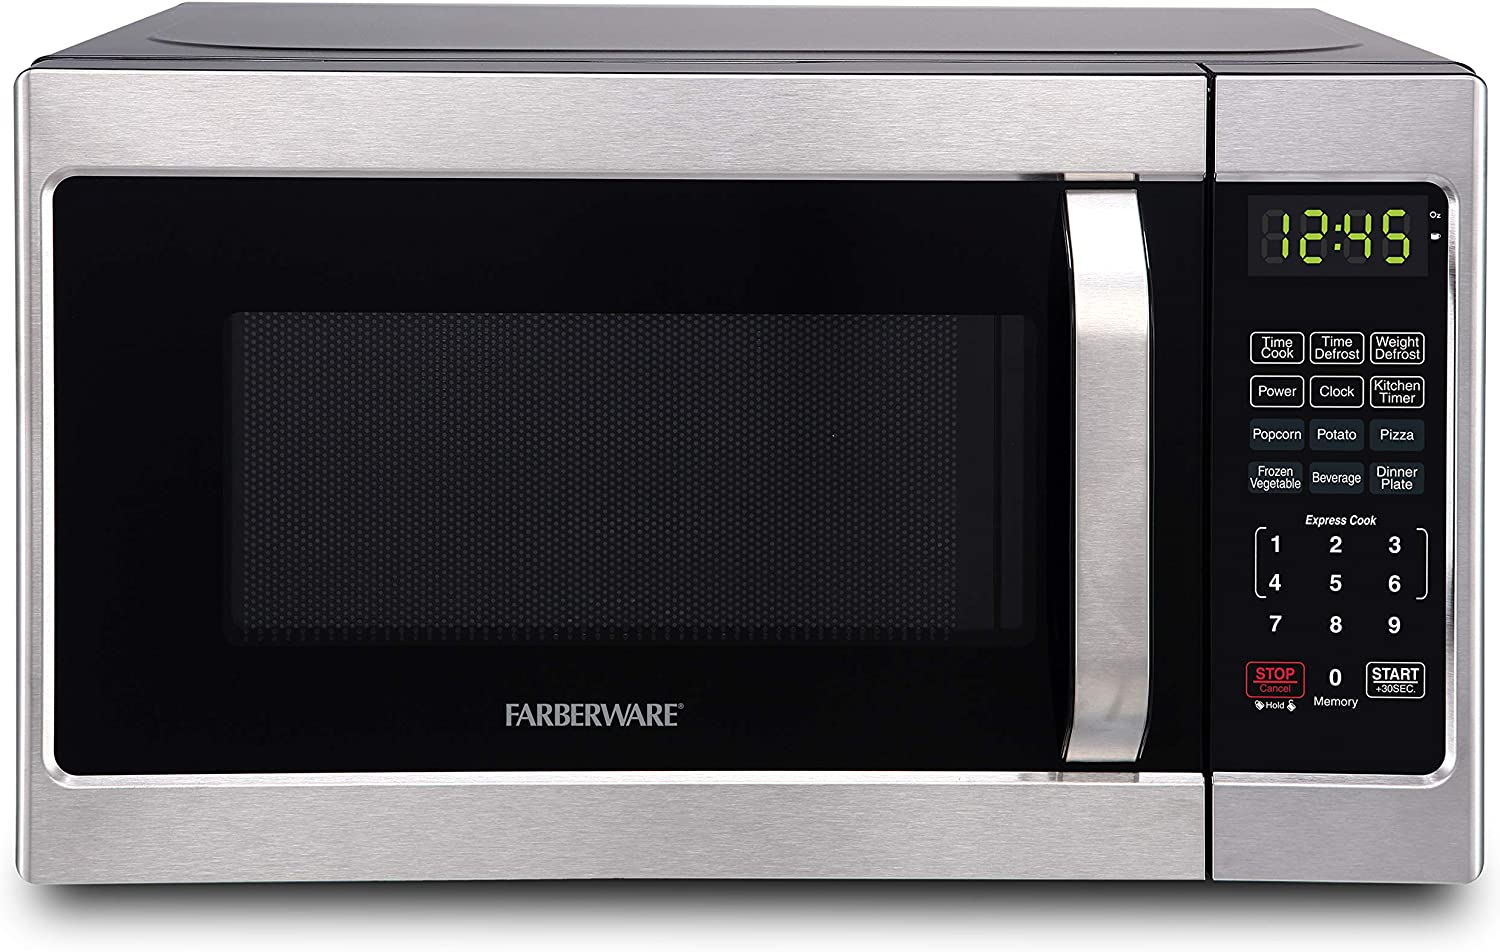 Best Microwave For Boats